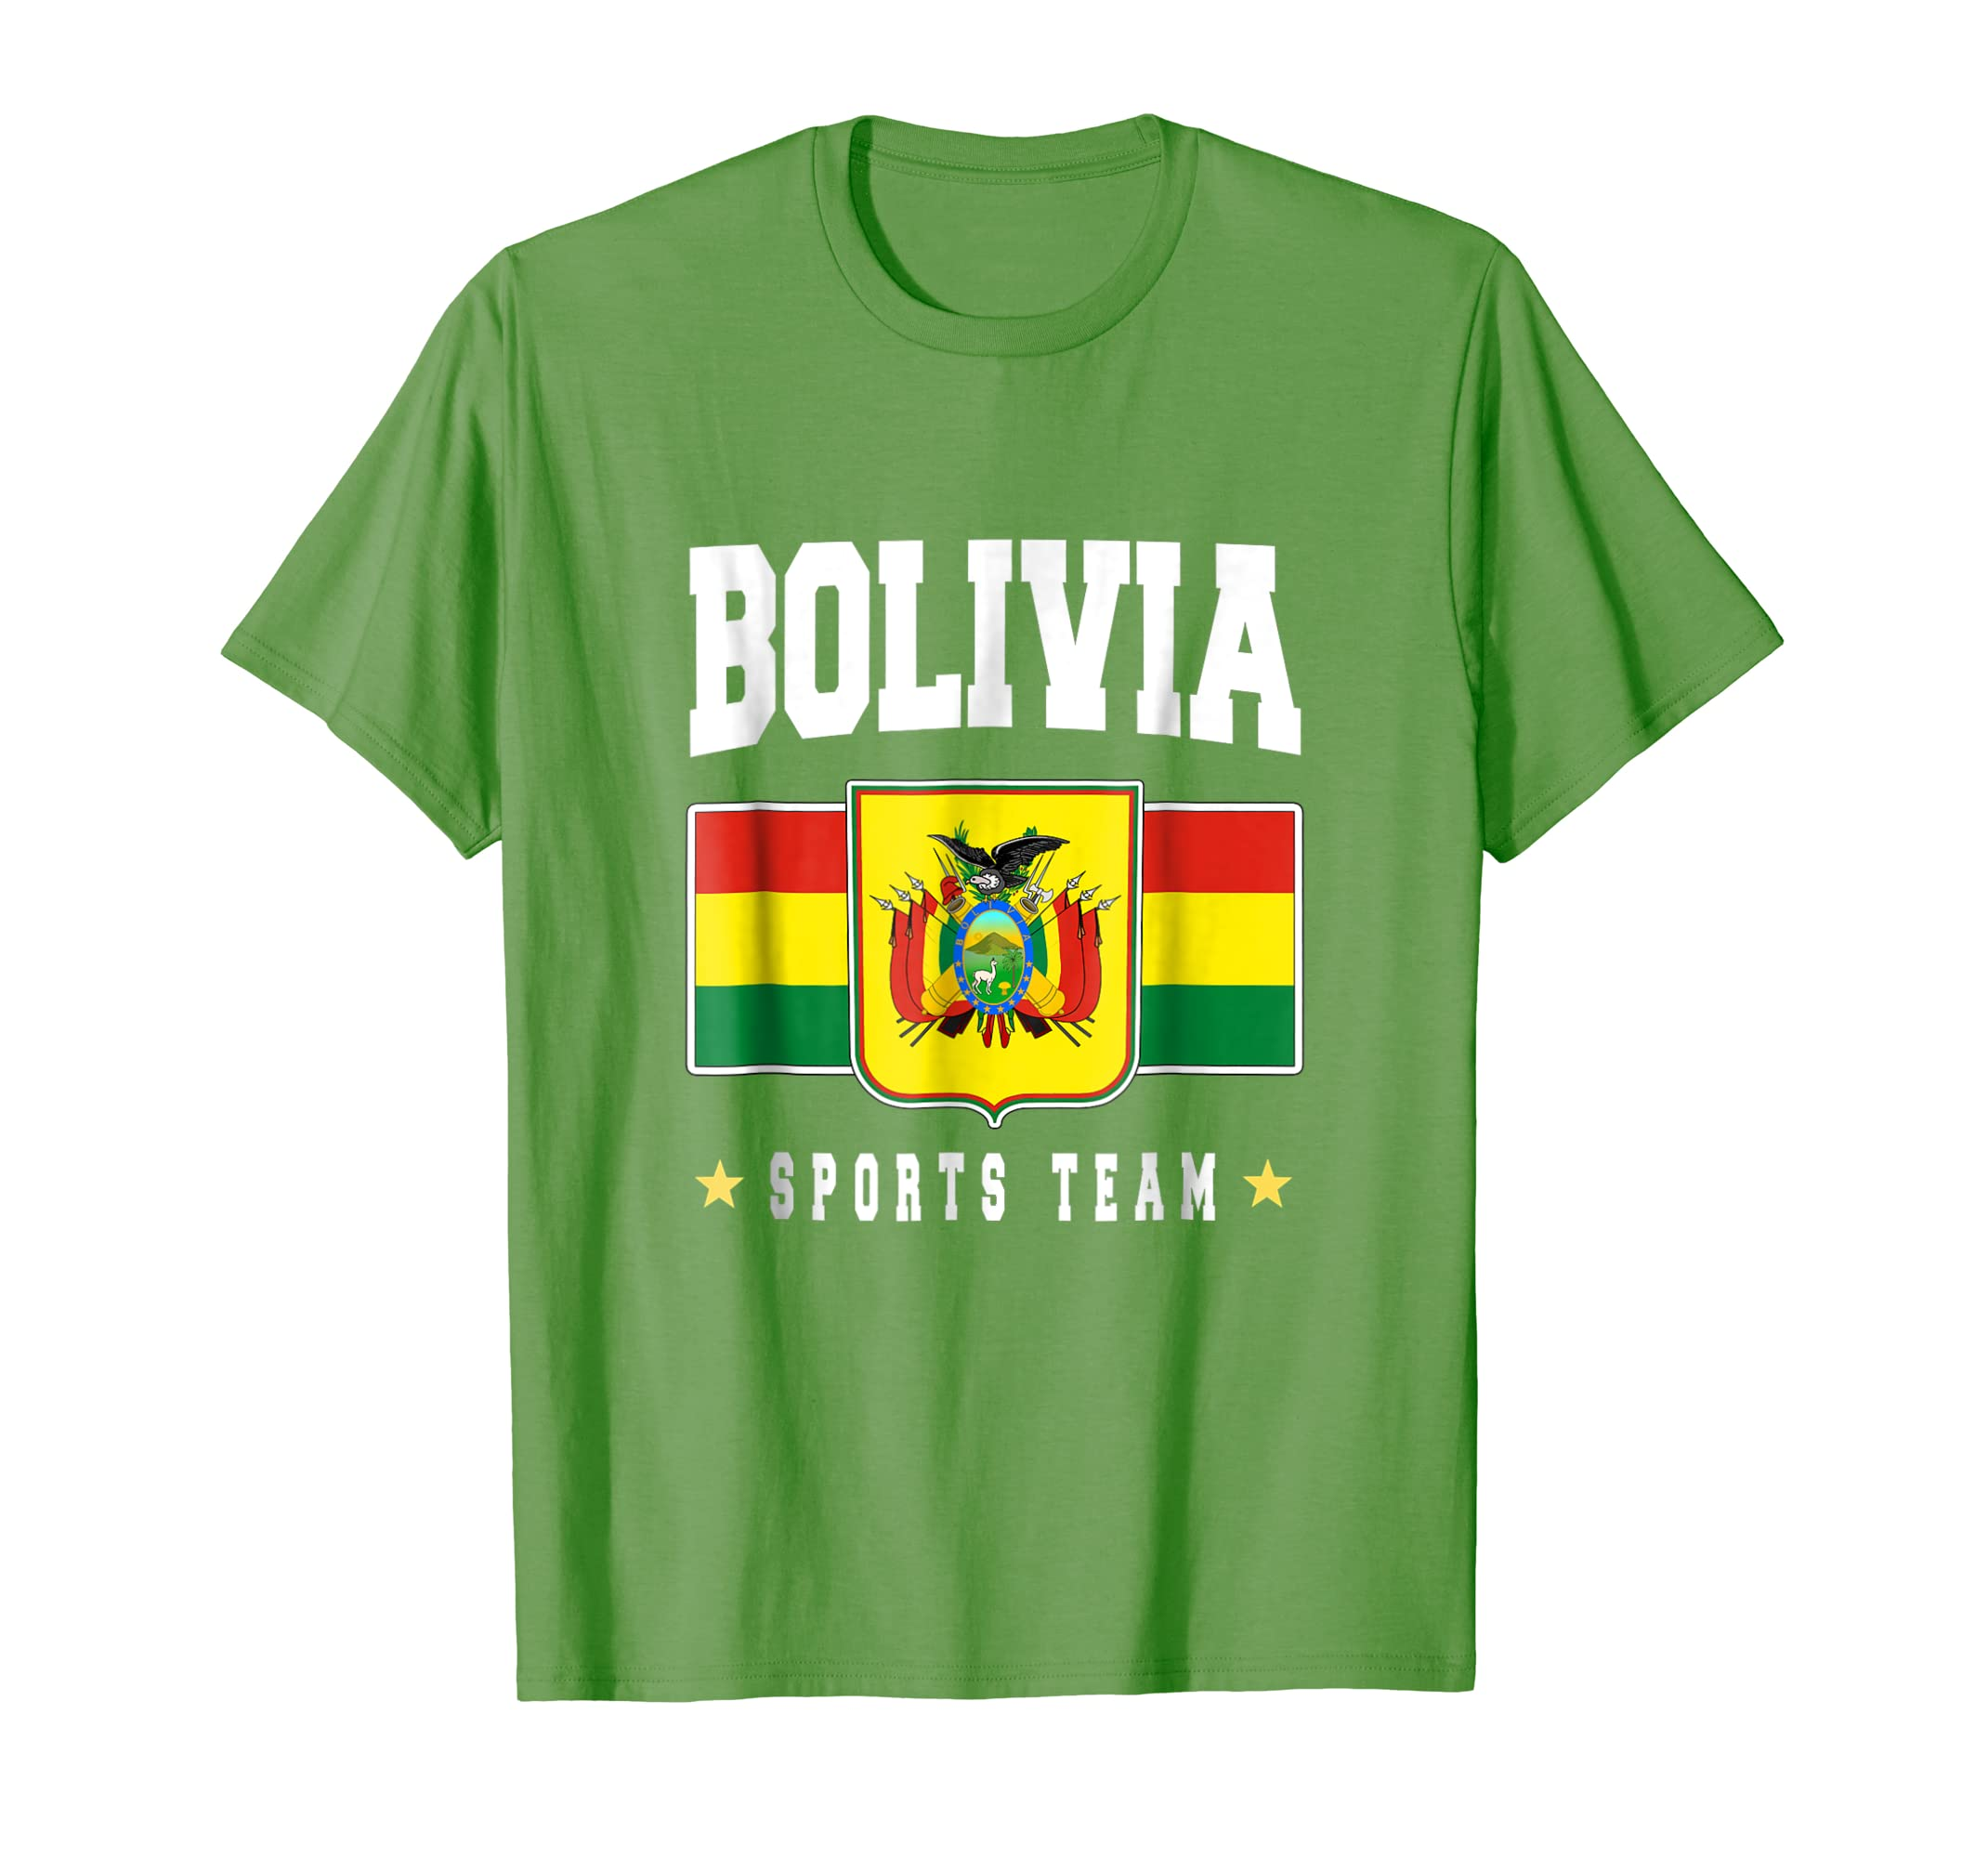 c2535009c4b Amazon.com: Bolivia T-shirt Bolivian Flag Soccer Futbol Fan Jersey: Clothing